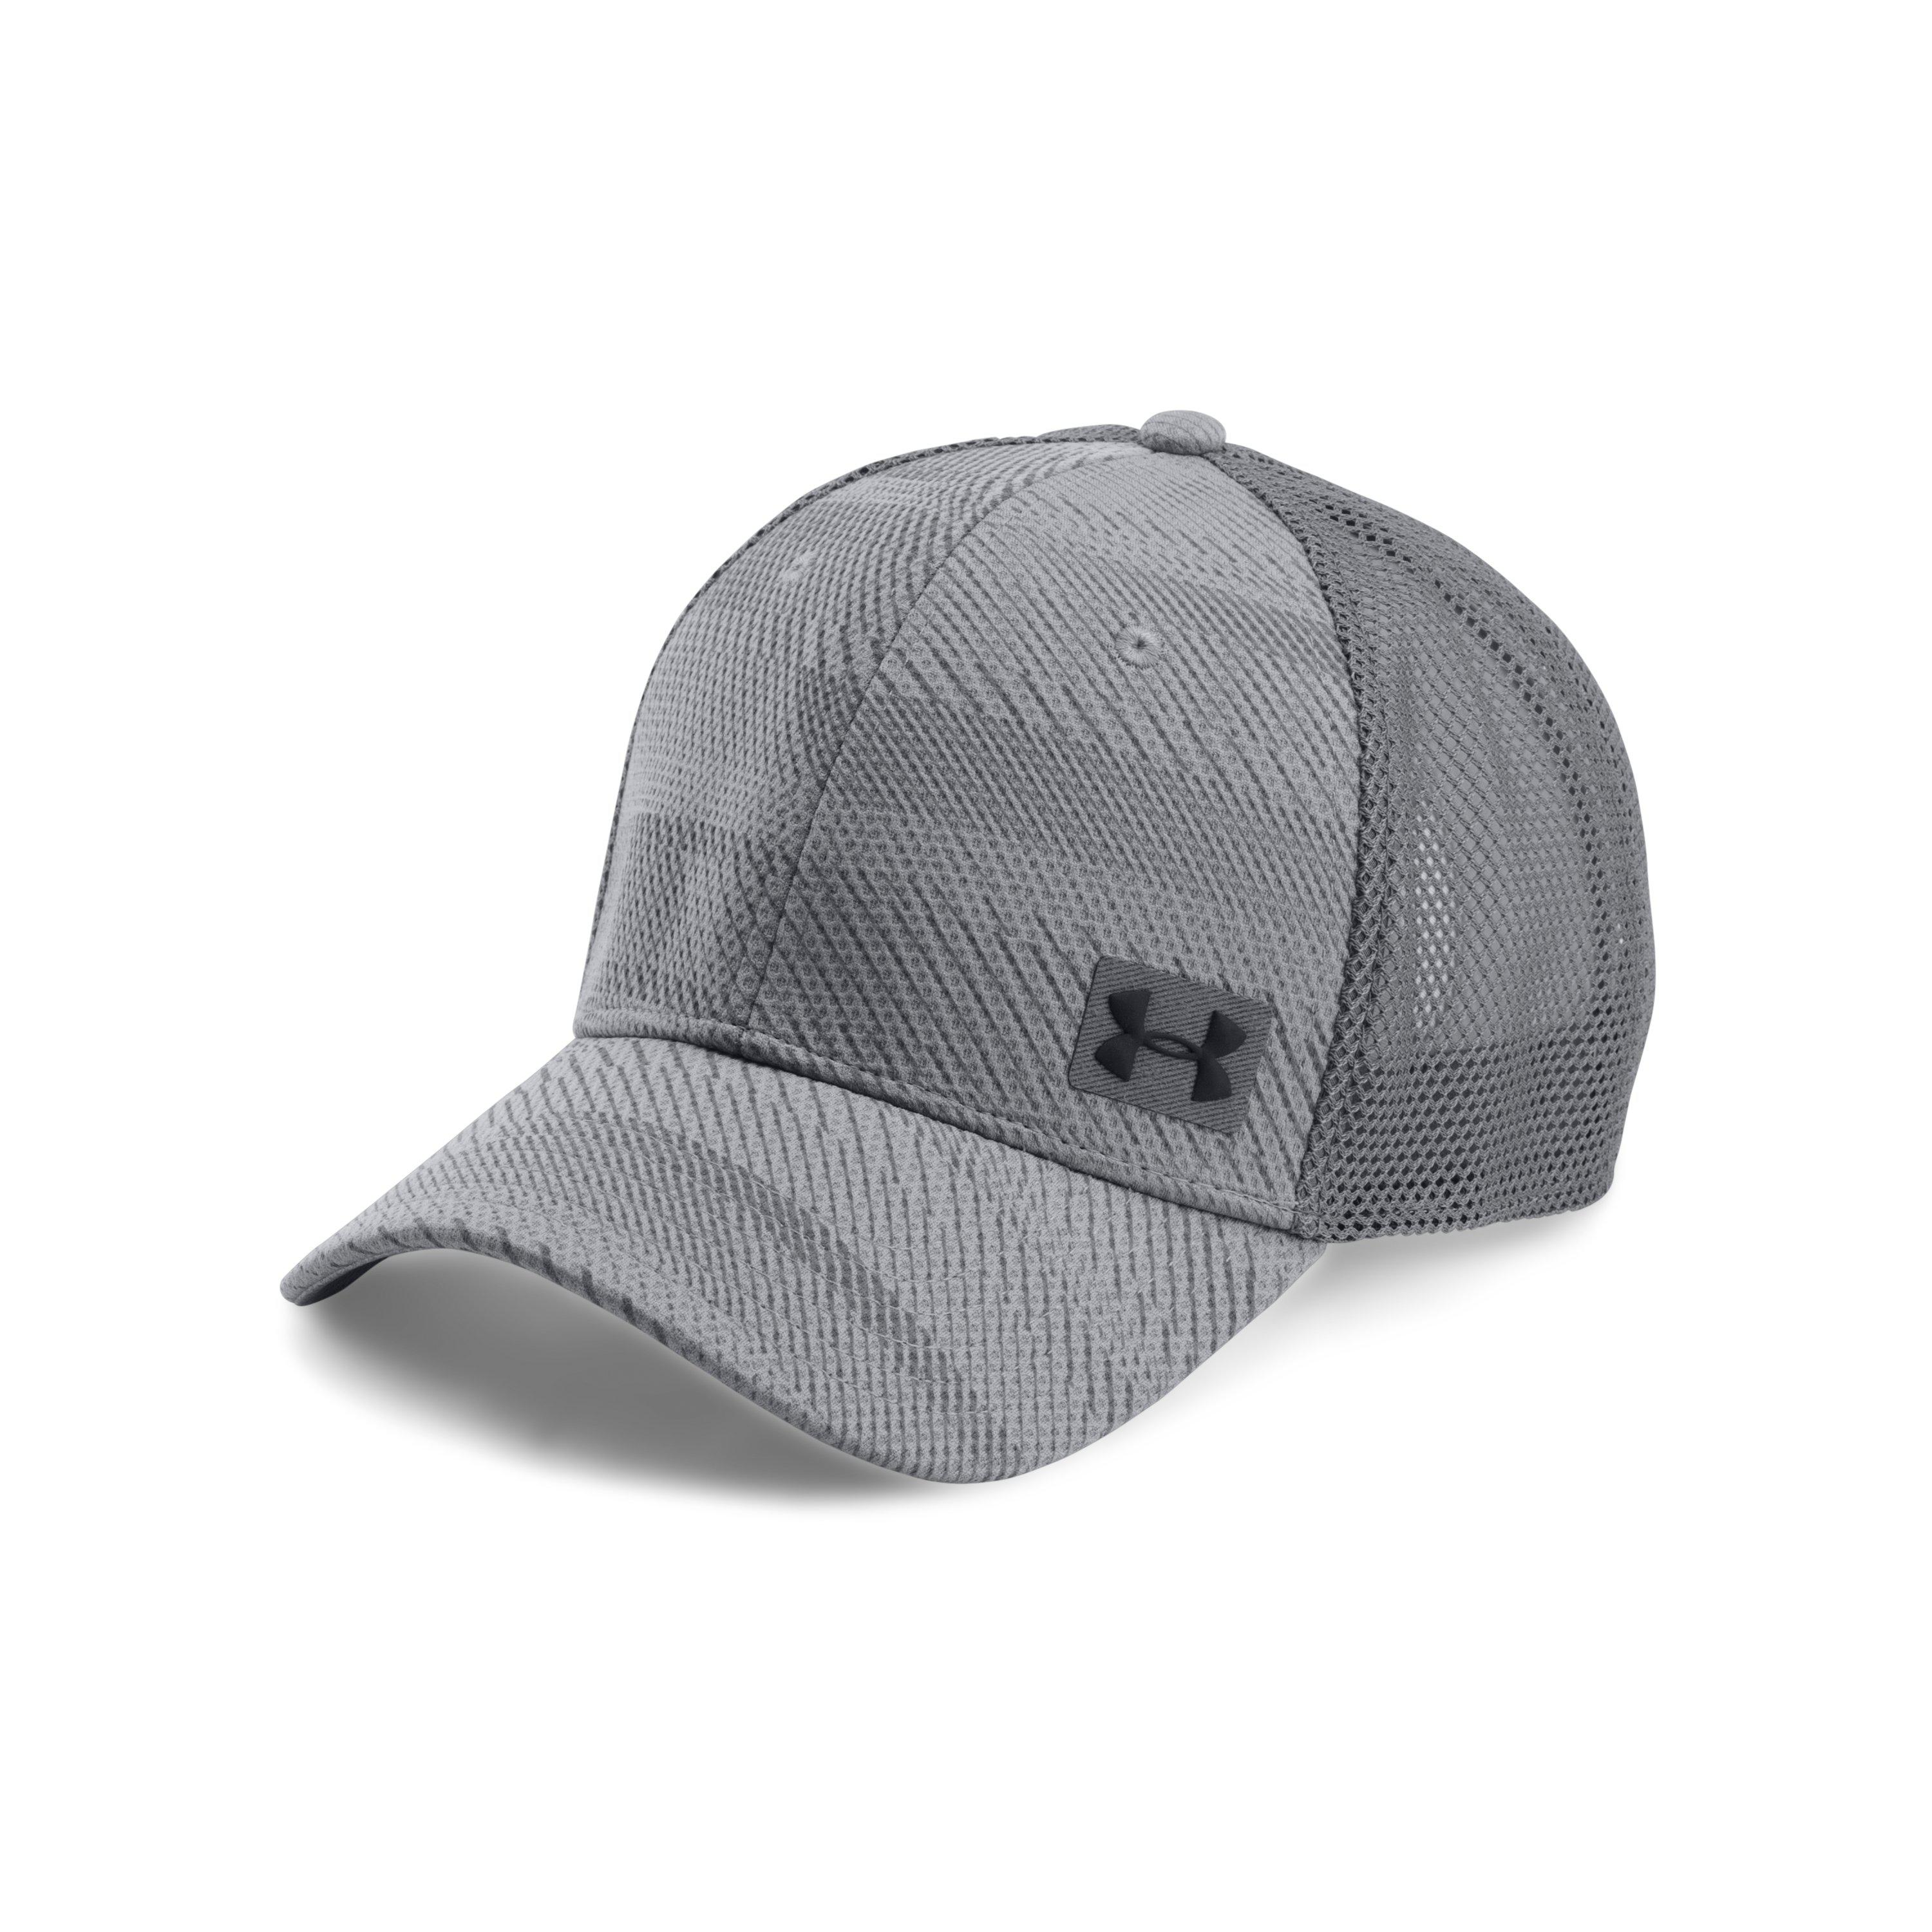 Lyst - Under Armour Men s Ua Blitz Trucker Cap in Gray for Men 0c2a1af89002